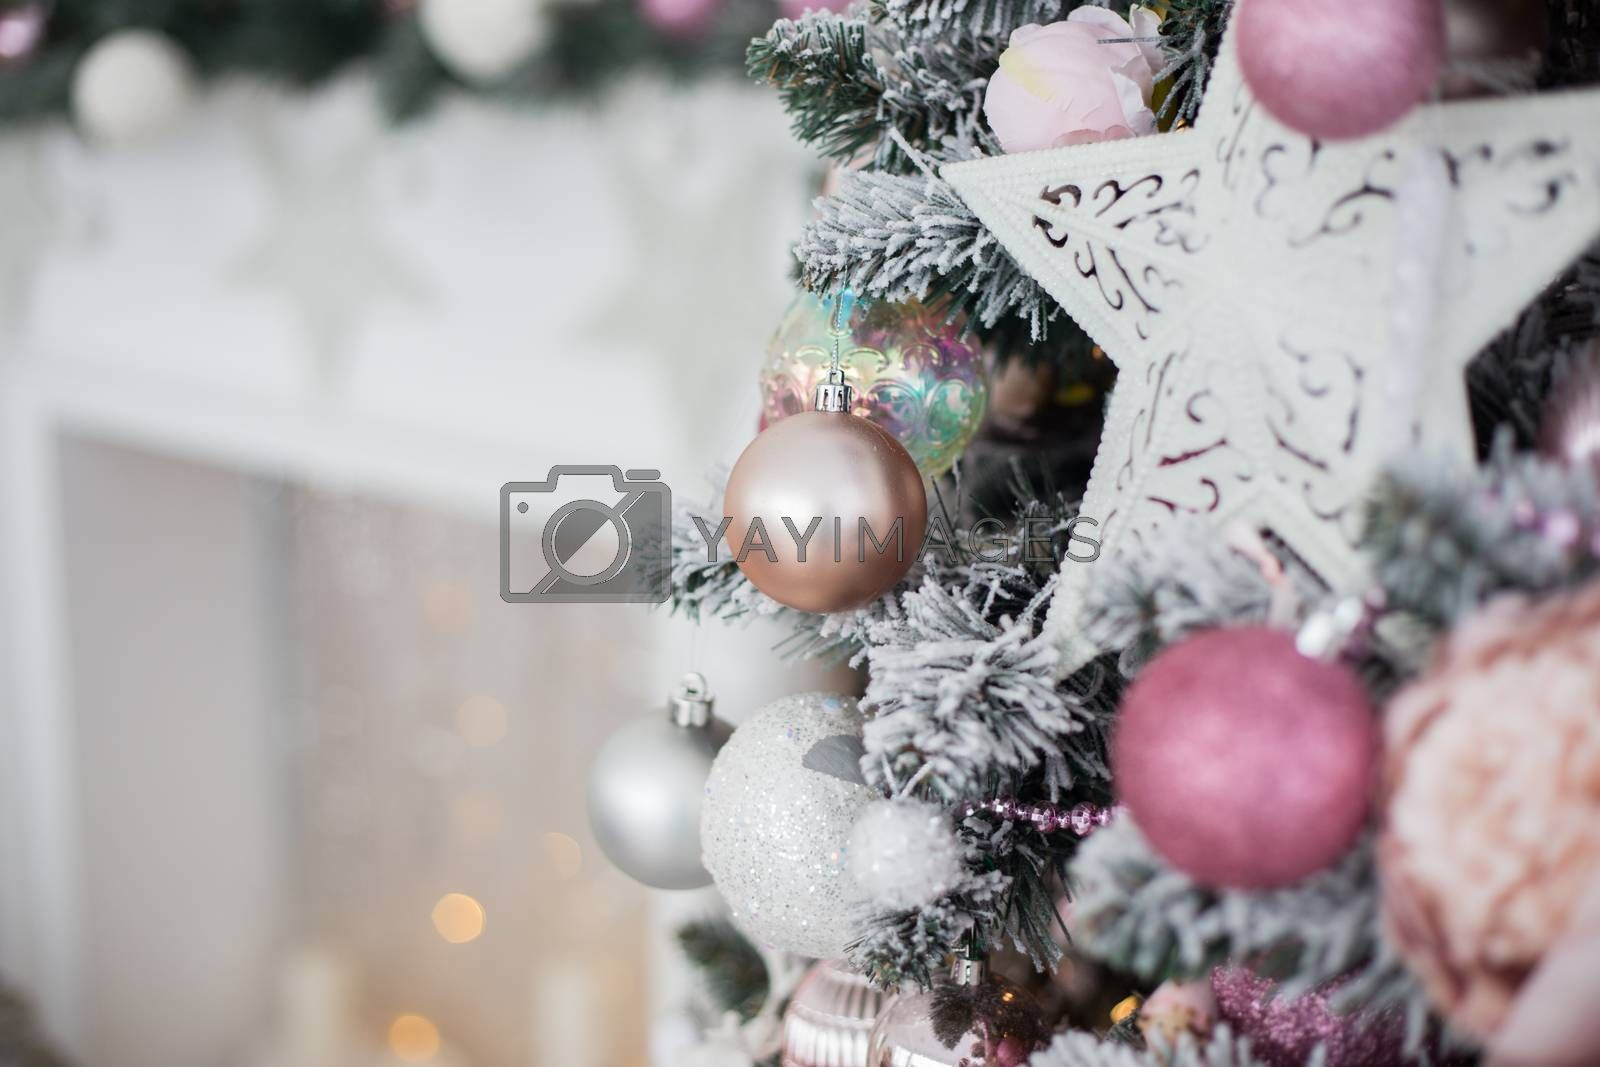 Green and White Christmas tree with pink toys new year winter gifts decor.